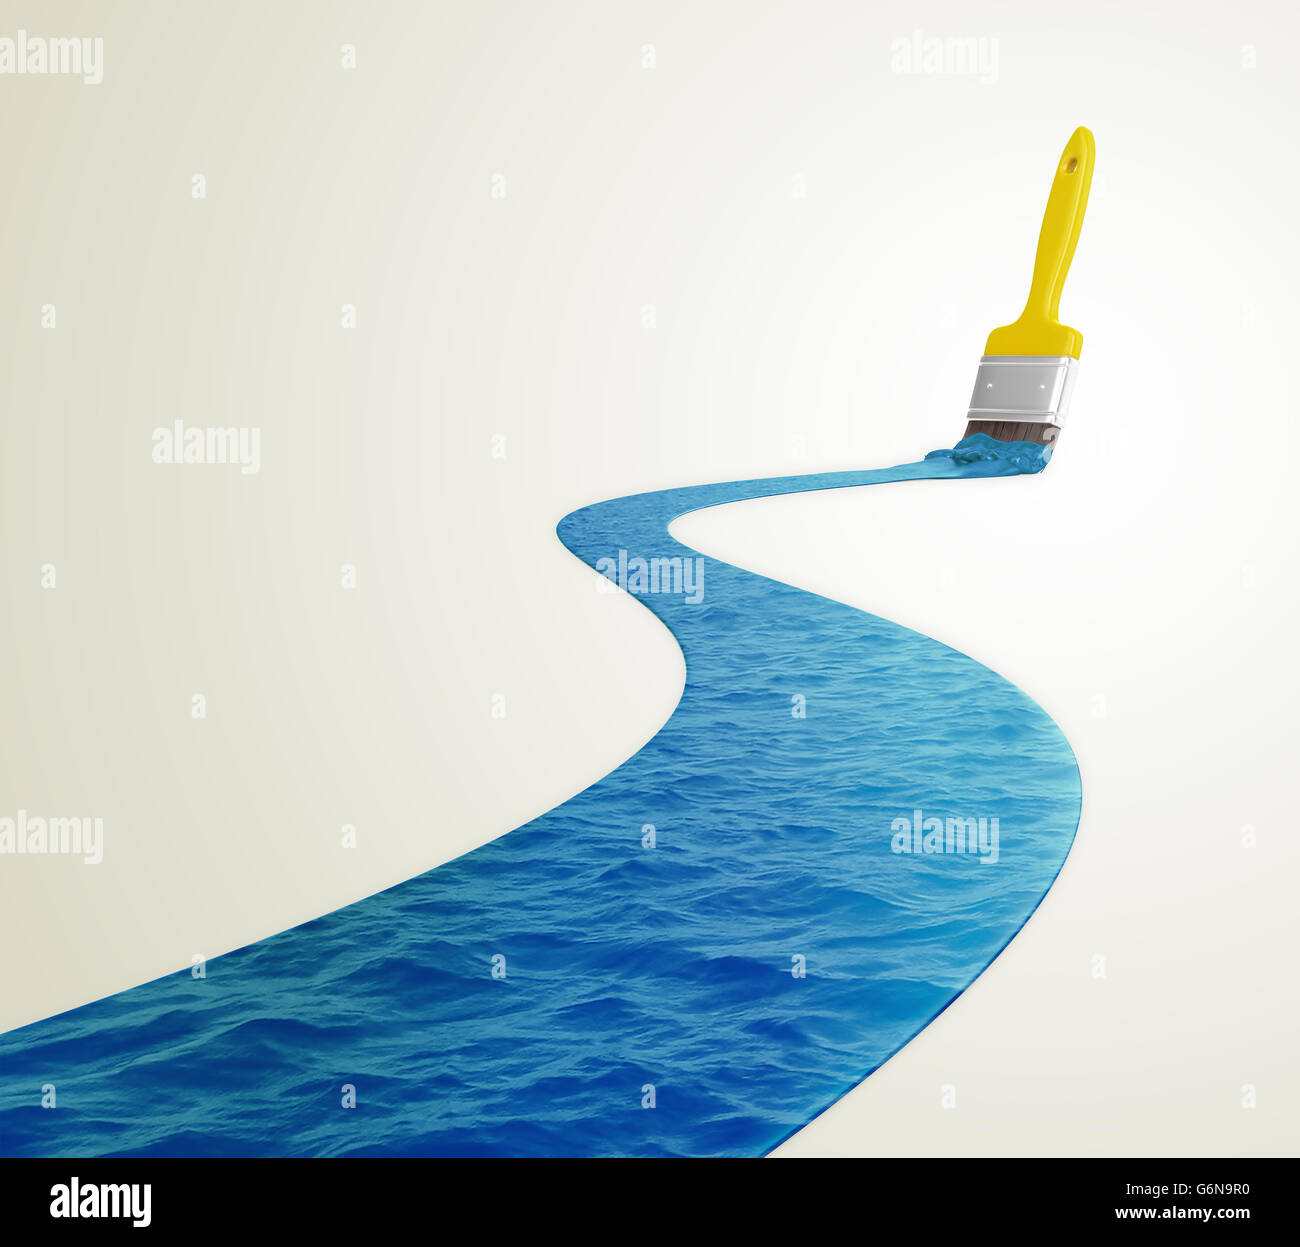 Water painted with a paintbrush - 3D illustration - Stock Image